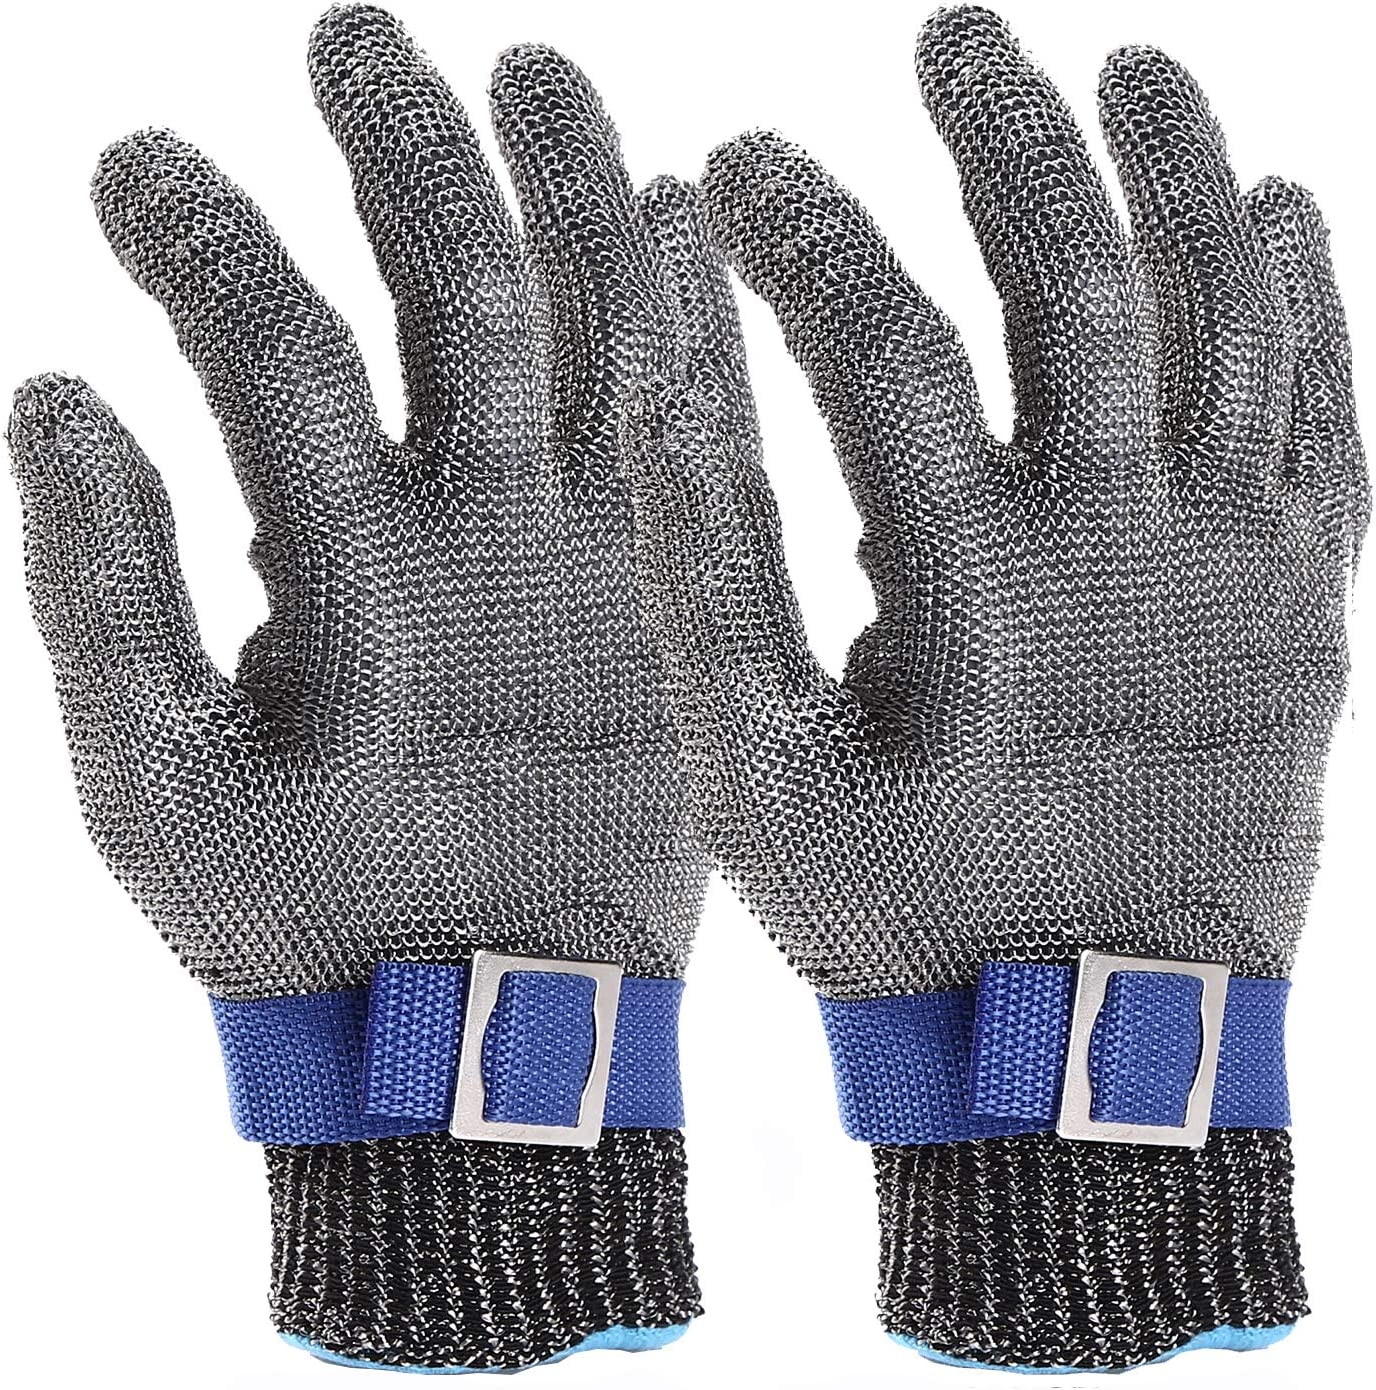 Cut Resistant Gloves-Stainless Steel Wire Metal Mesh Butcher Safety Work Gloves for Meat Cutting, fishing (L 2PCS)